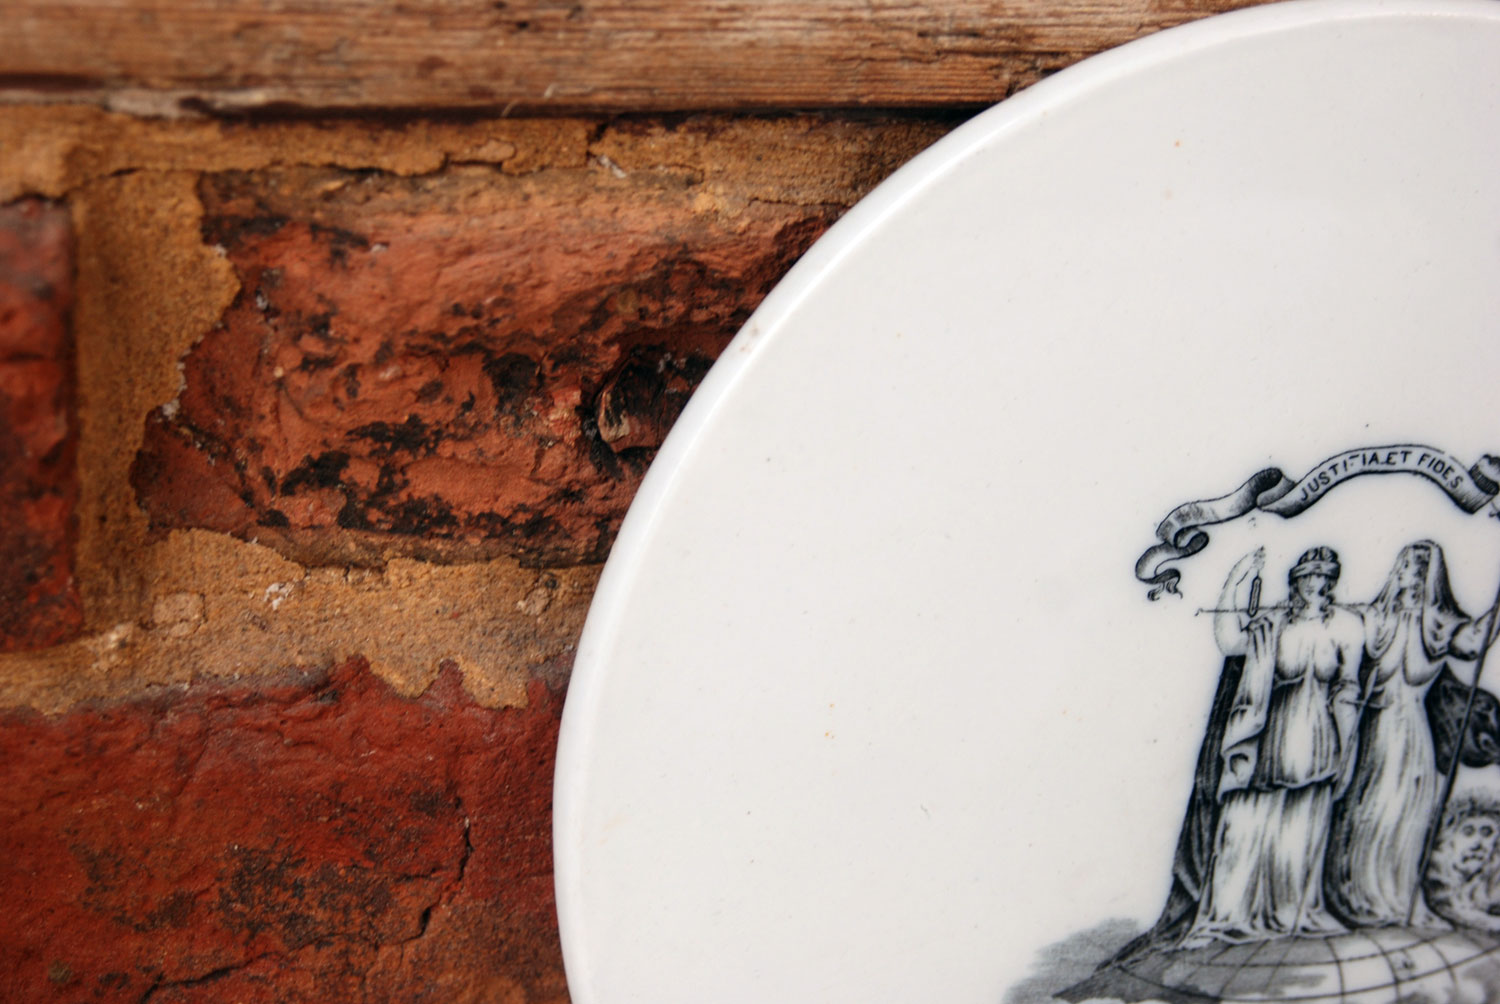 antique victorian edwardian large white ironstone scale plate justitia fides black transfer print